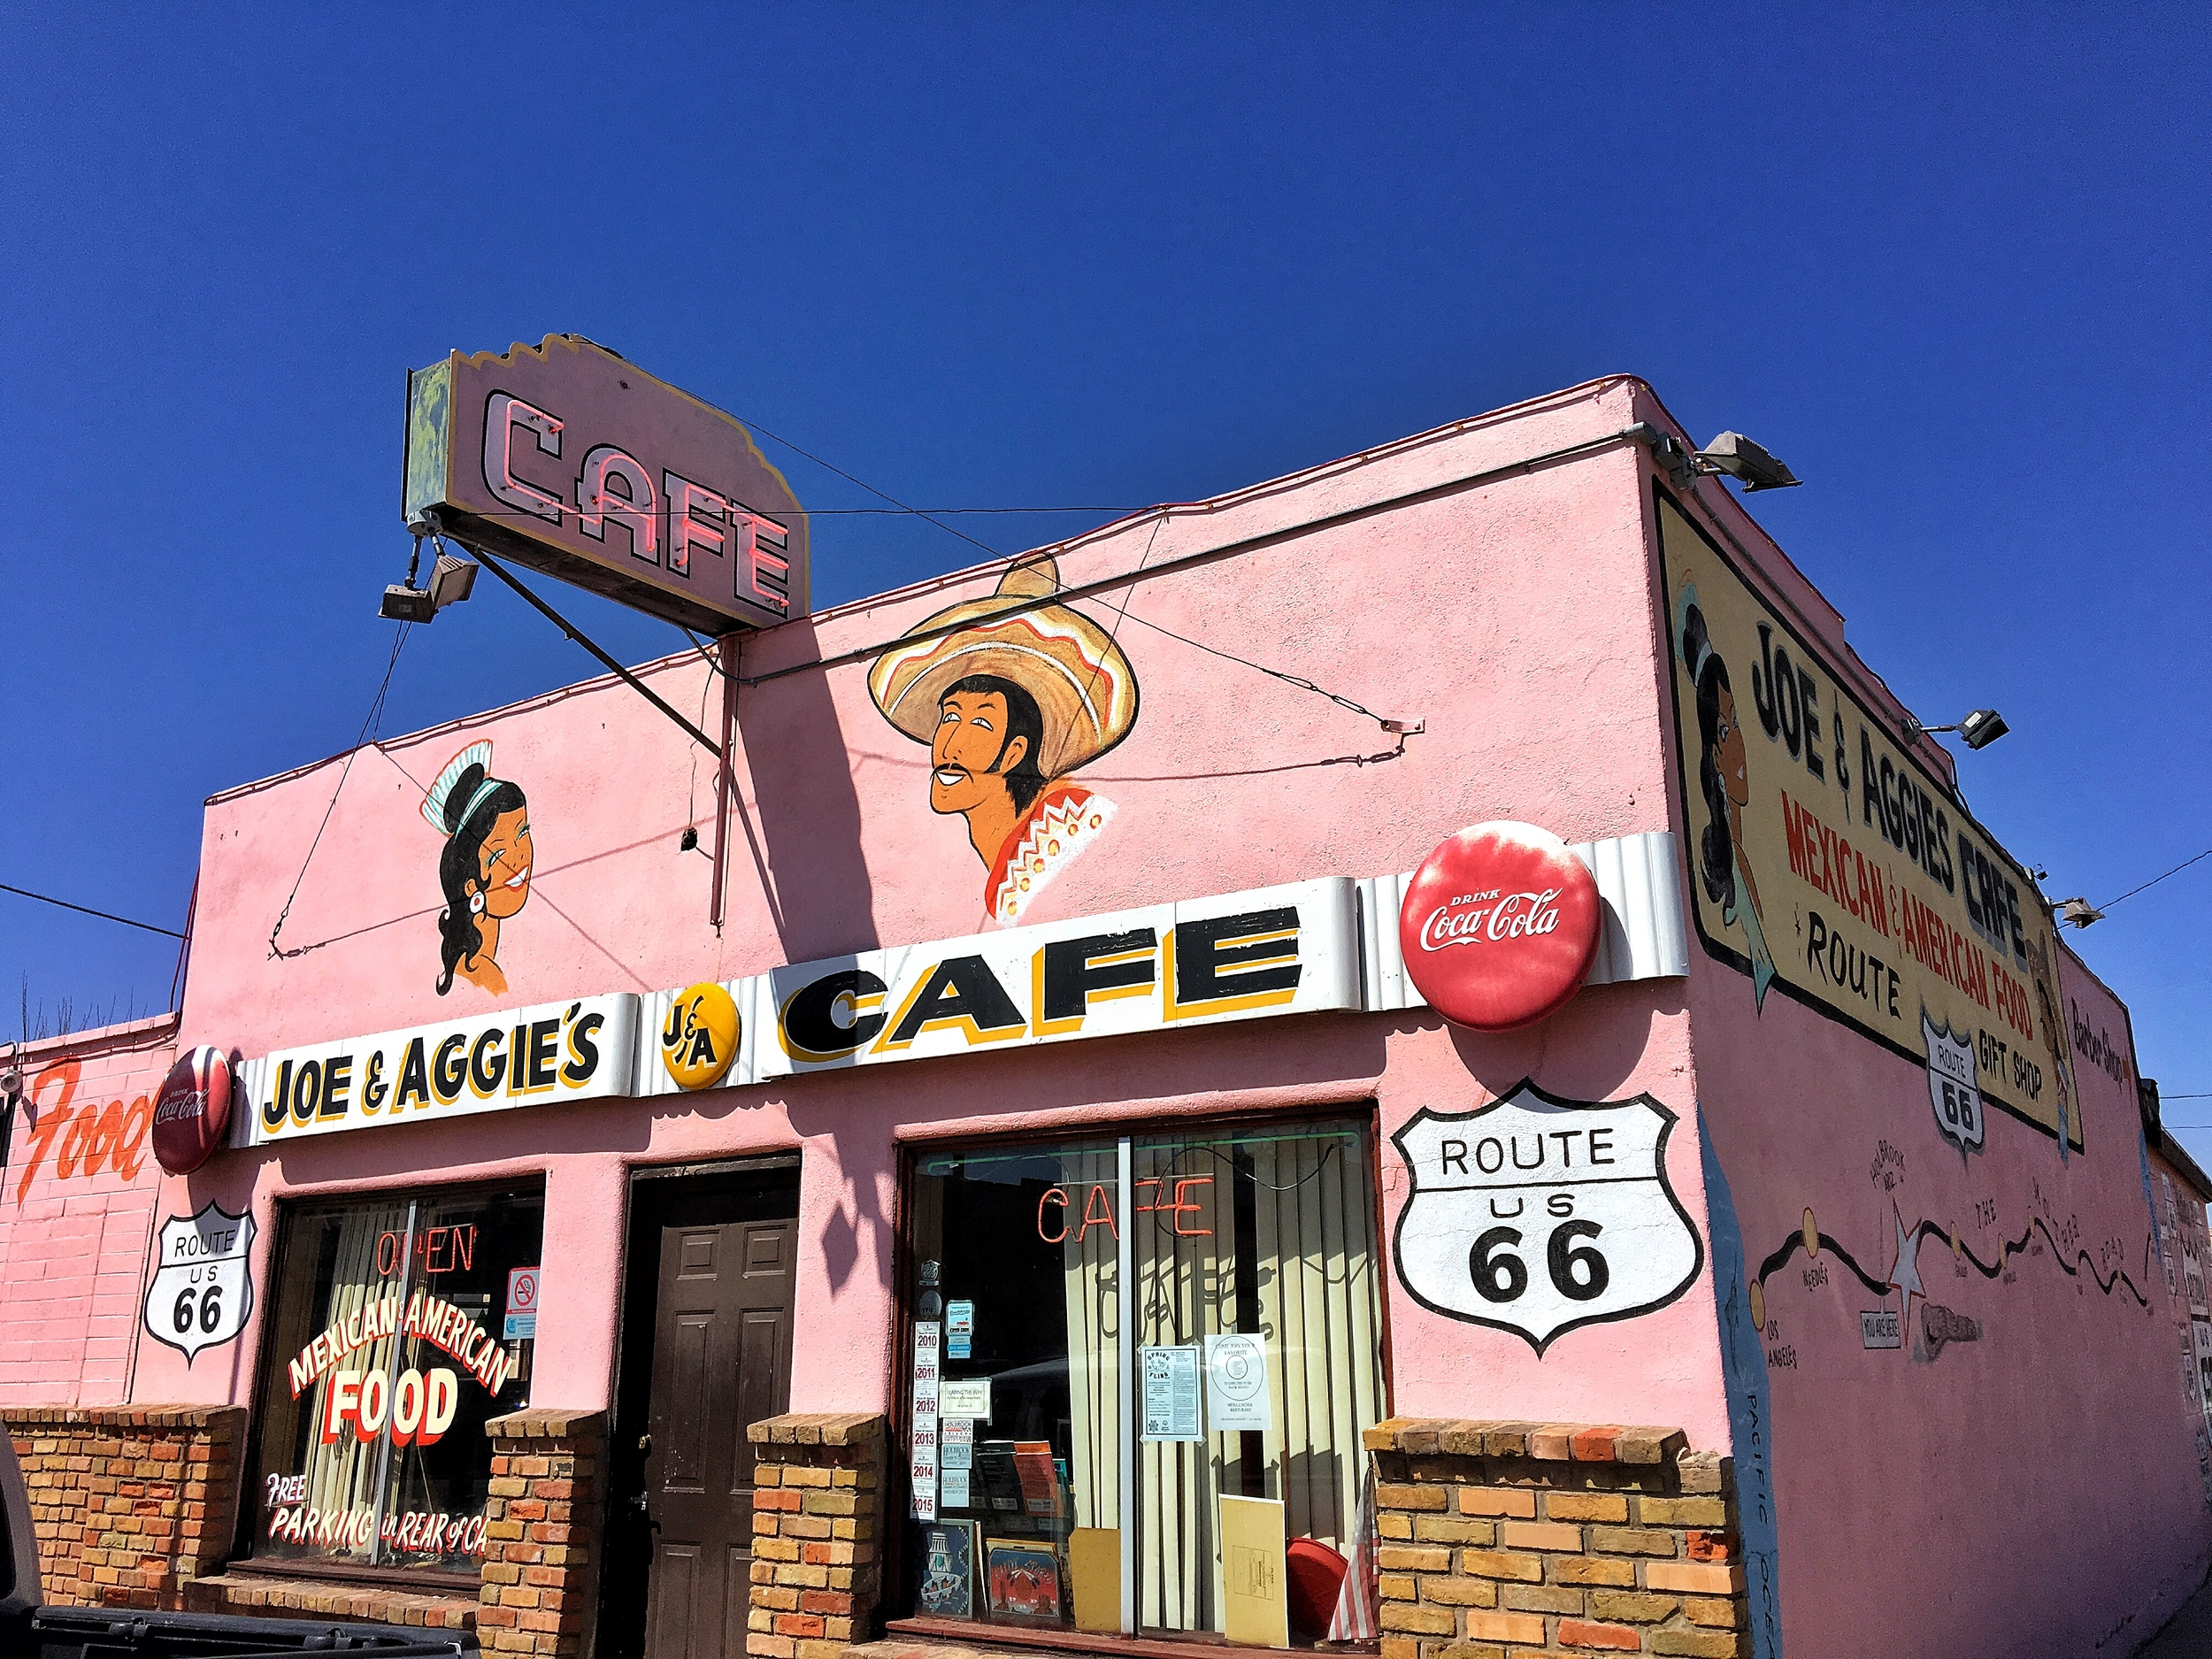 Joe & Aggies Cafe on historic Route 66 in Holbrook, Arizona, en route to Petrified Forest National Park in Arizona, we needed our Mexican food fix!